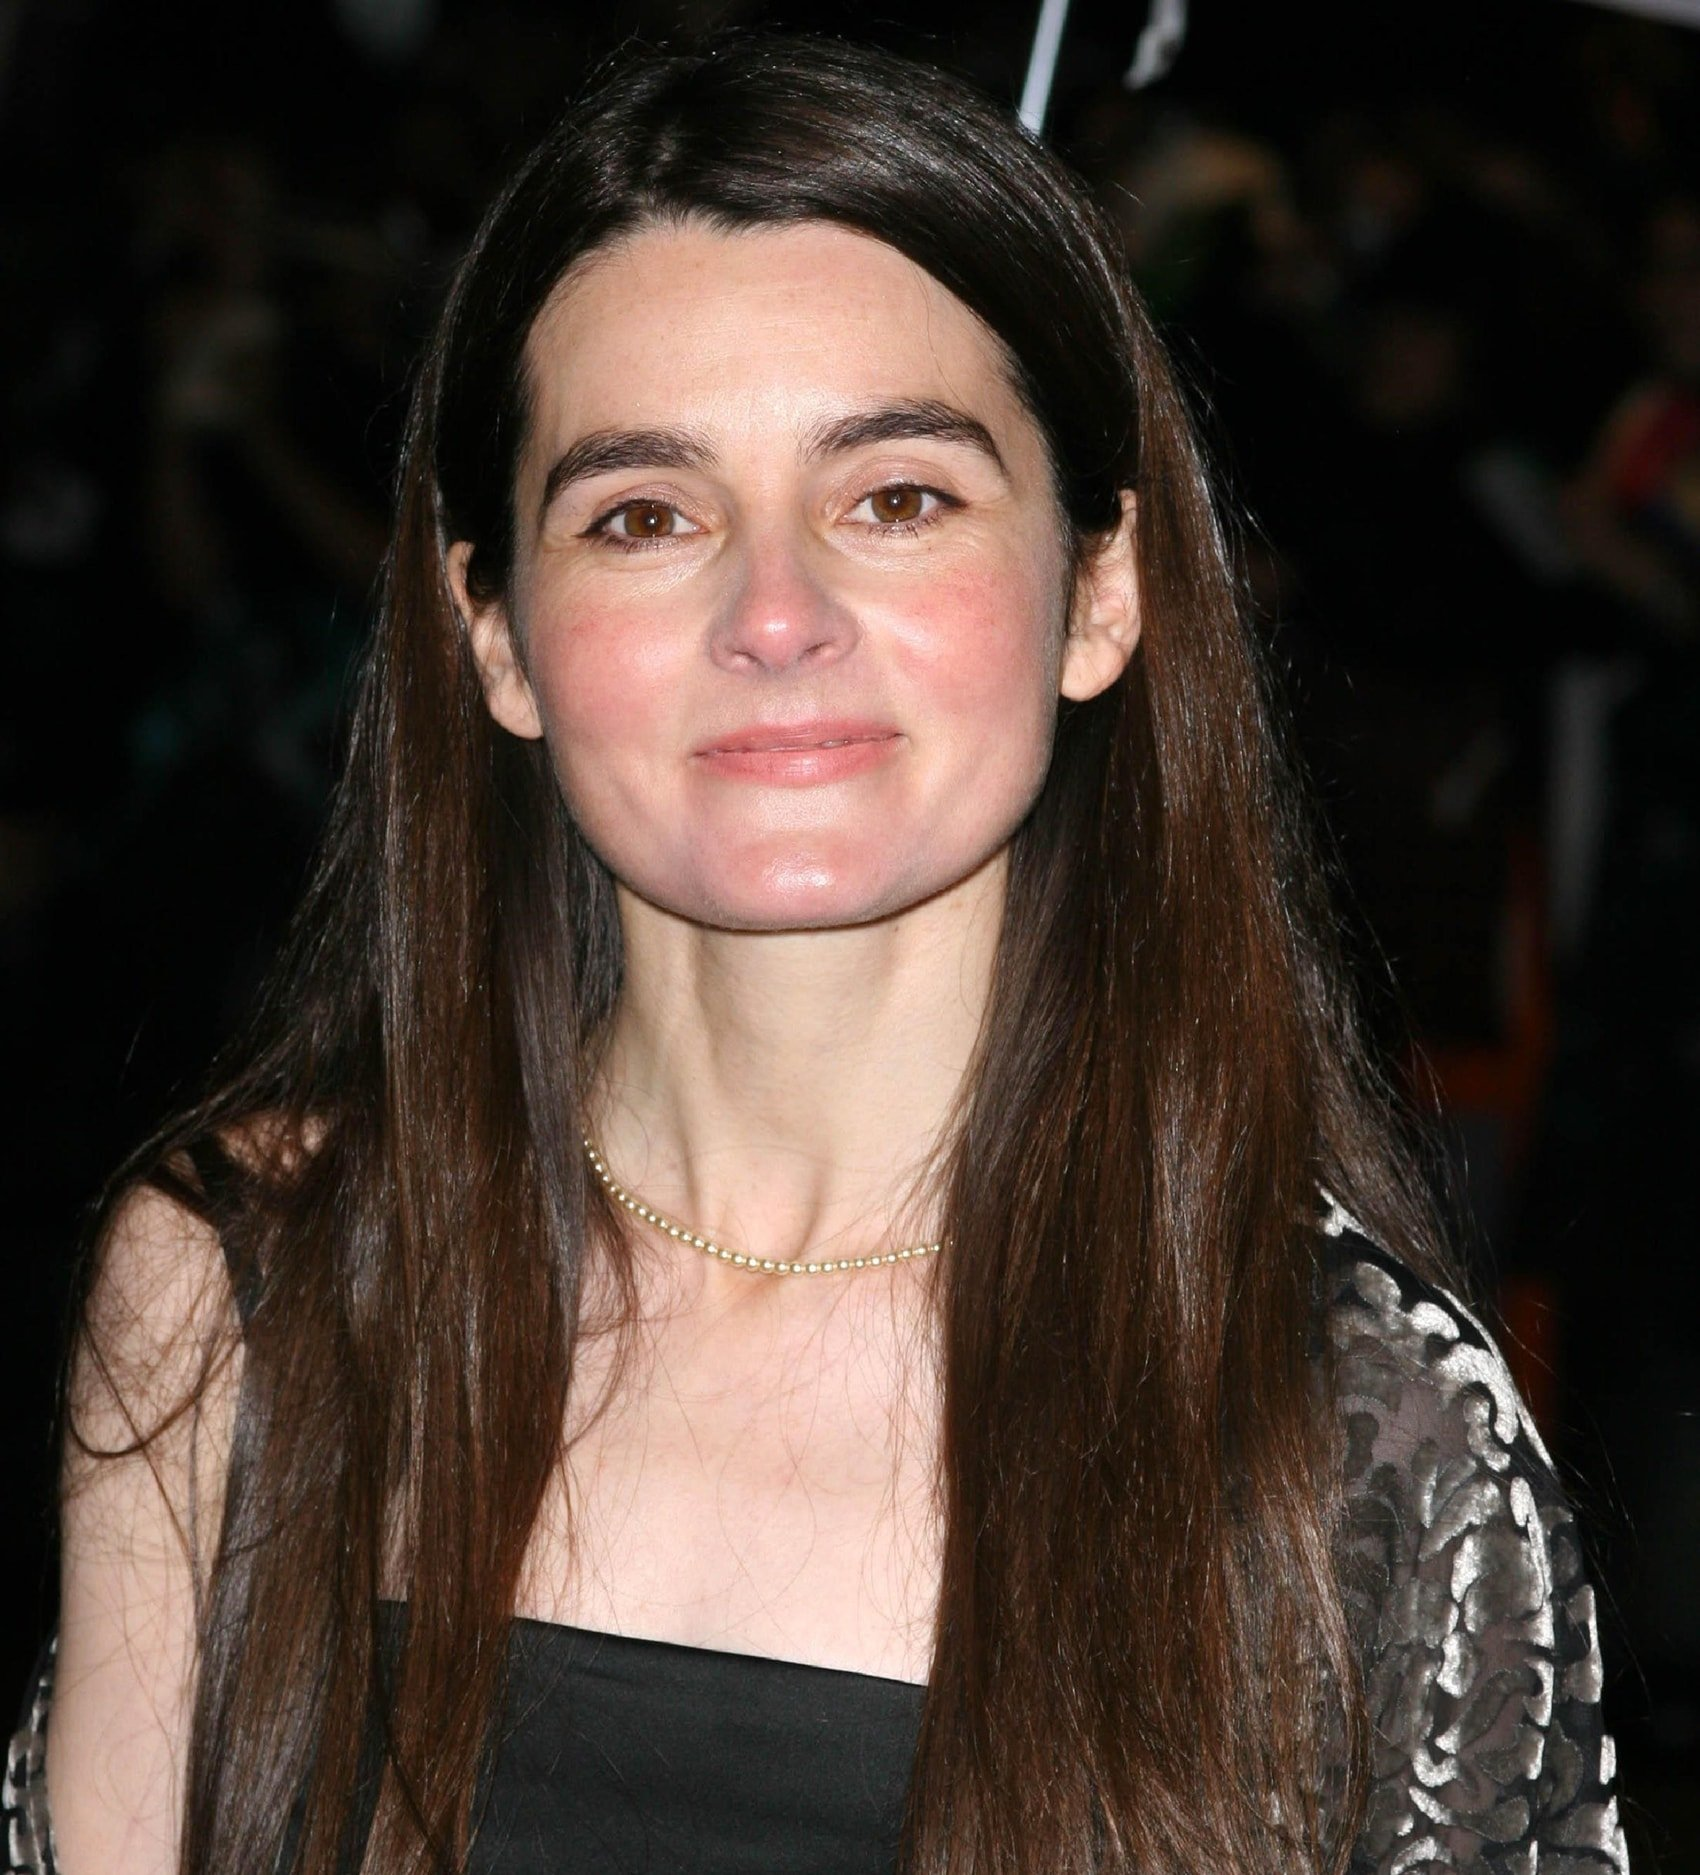 Shirley Henderson played Moaning Myrtle in Harry Potter and the Chamber of Secrets (2002) and Harry Potter and the Goblet of Fire (2005)